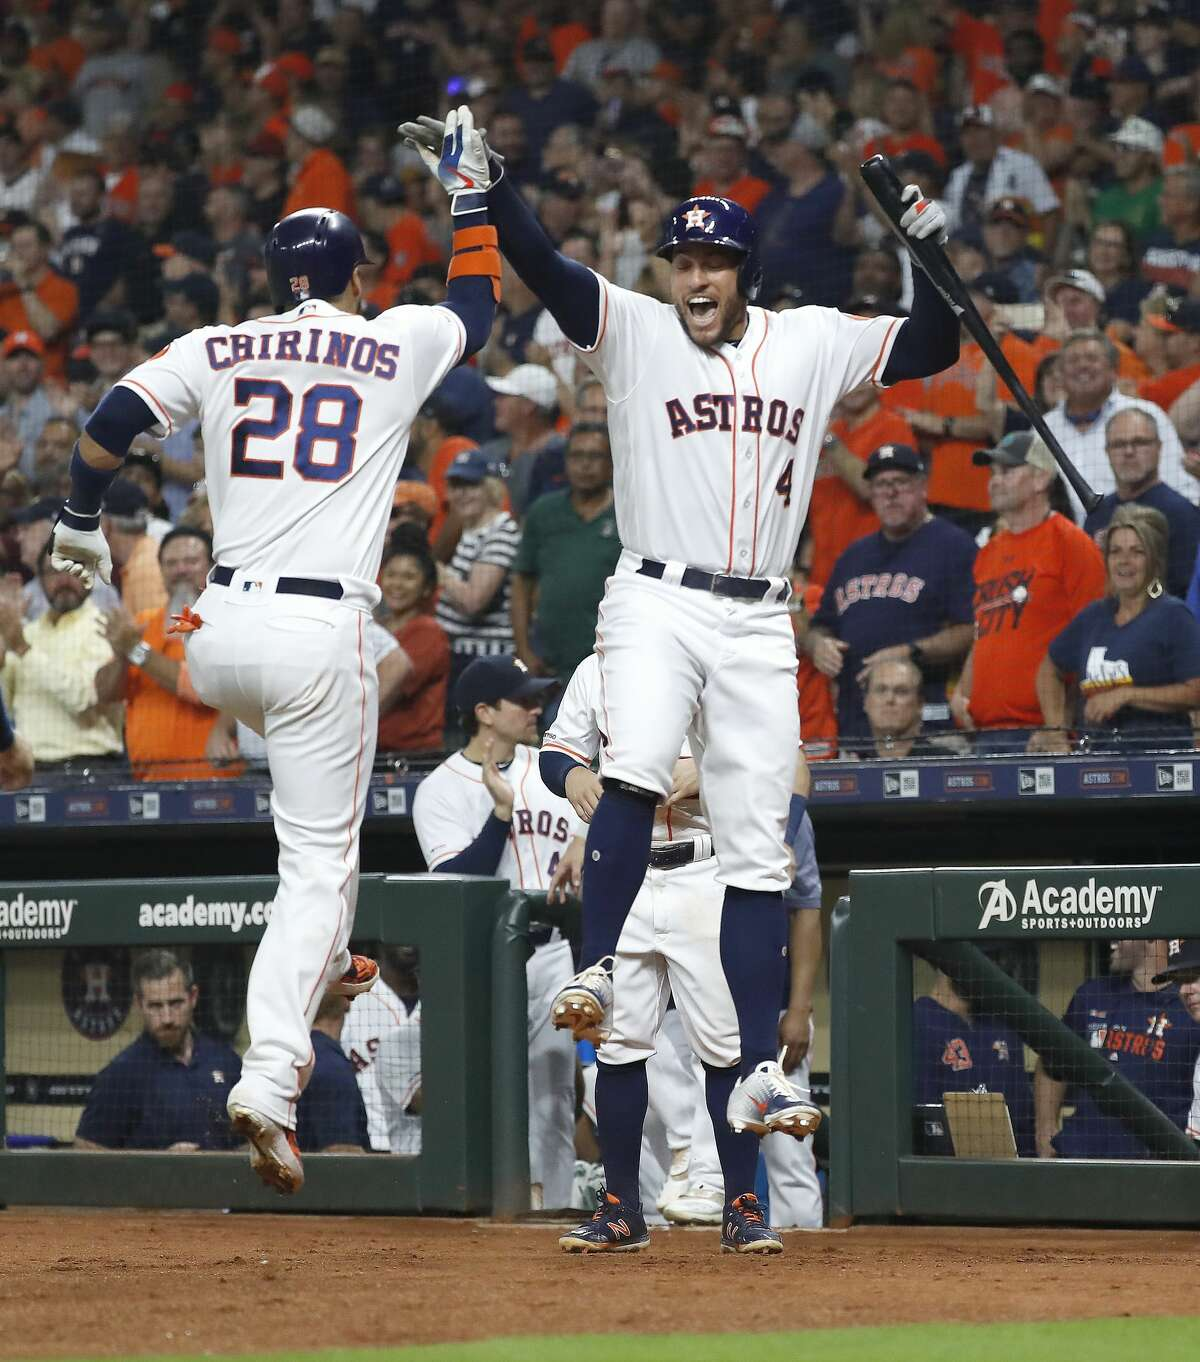 Houston Astros Robinson Chirinos (28) celebrates his two-run home run with George Springer (4) during the first inning of an MLB baseball game at Minute Maid Park, Monday, Sept. 9, 2019, in Houston.